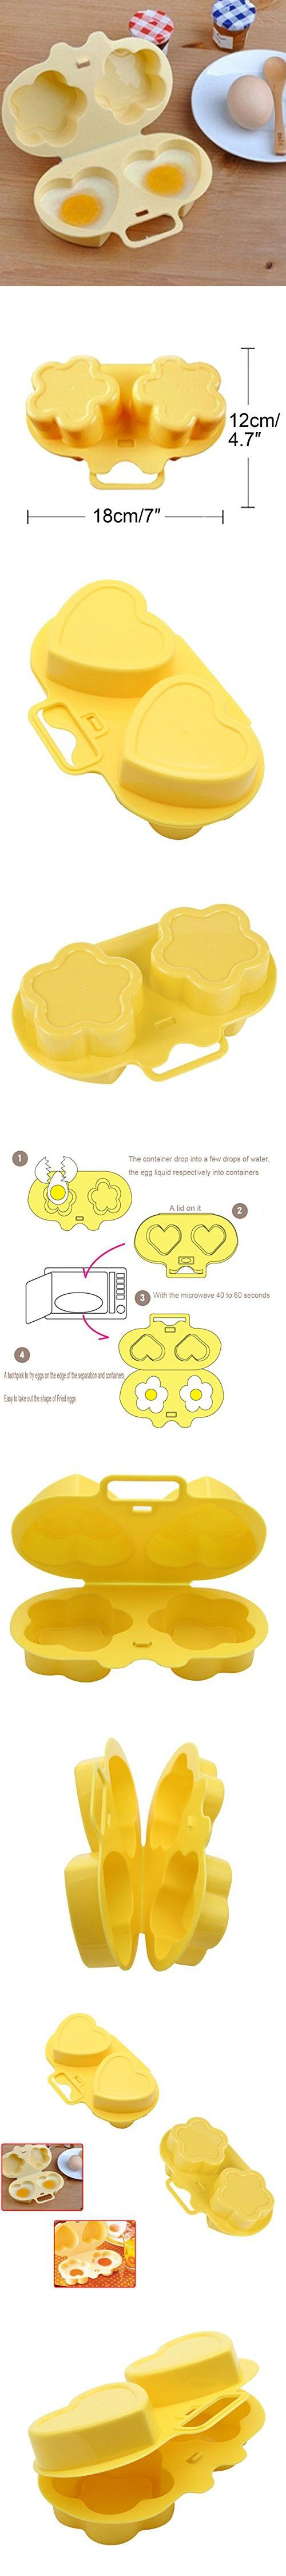 Mochiglory Microwave Oven Cake Budding Sushi Egg Boiler Steamer Mould Flower Heart Shape